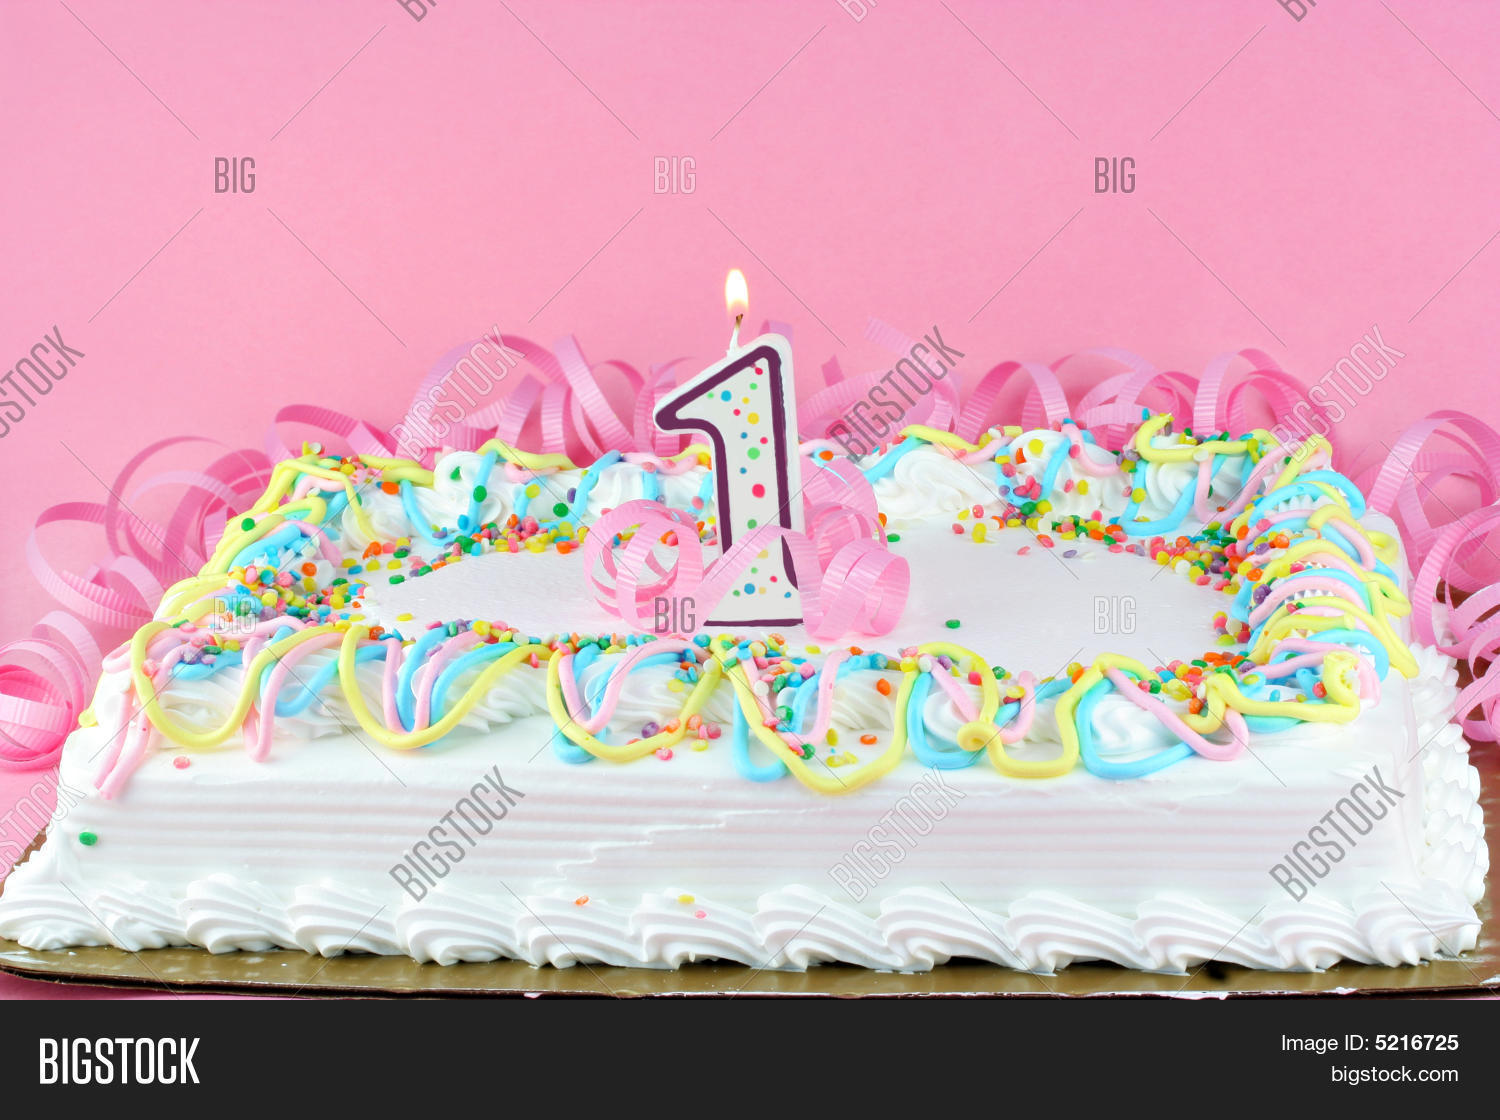 Fabulous Pretty Birthday Cake Image Photo Free Trial Bigstock Birthday Cards Printable Riciscafe Filternl